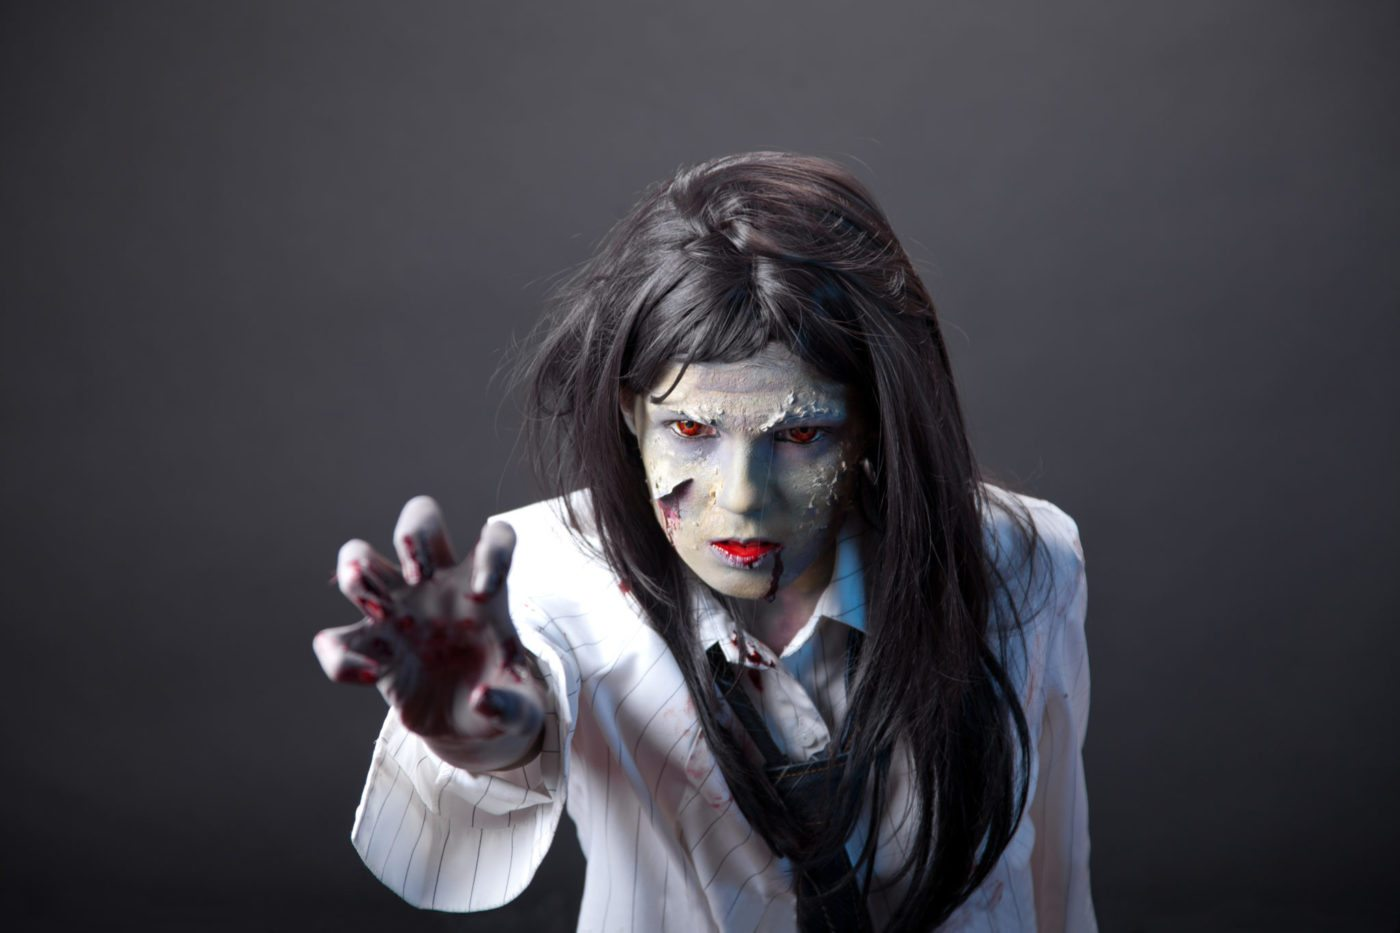 How to serve clients who think real estate agents are evil